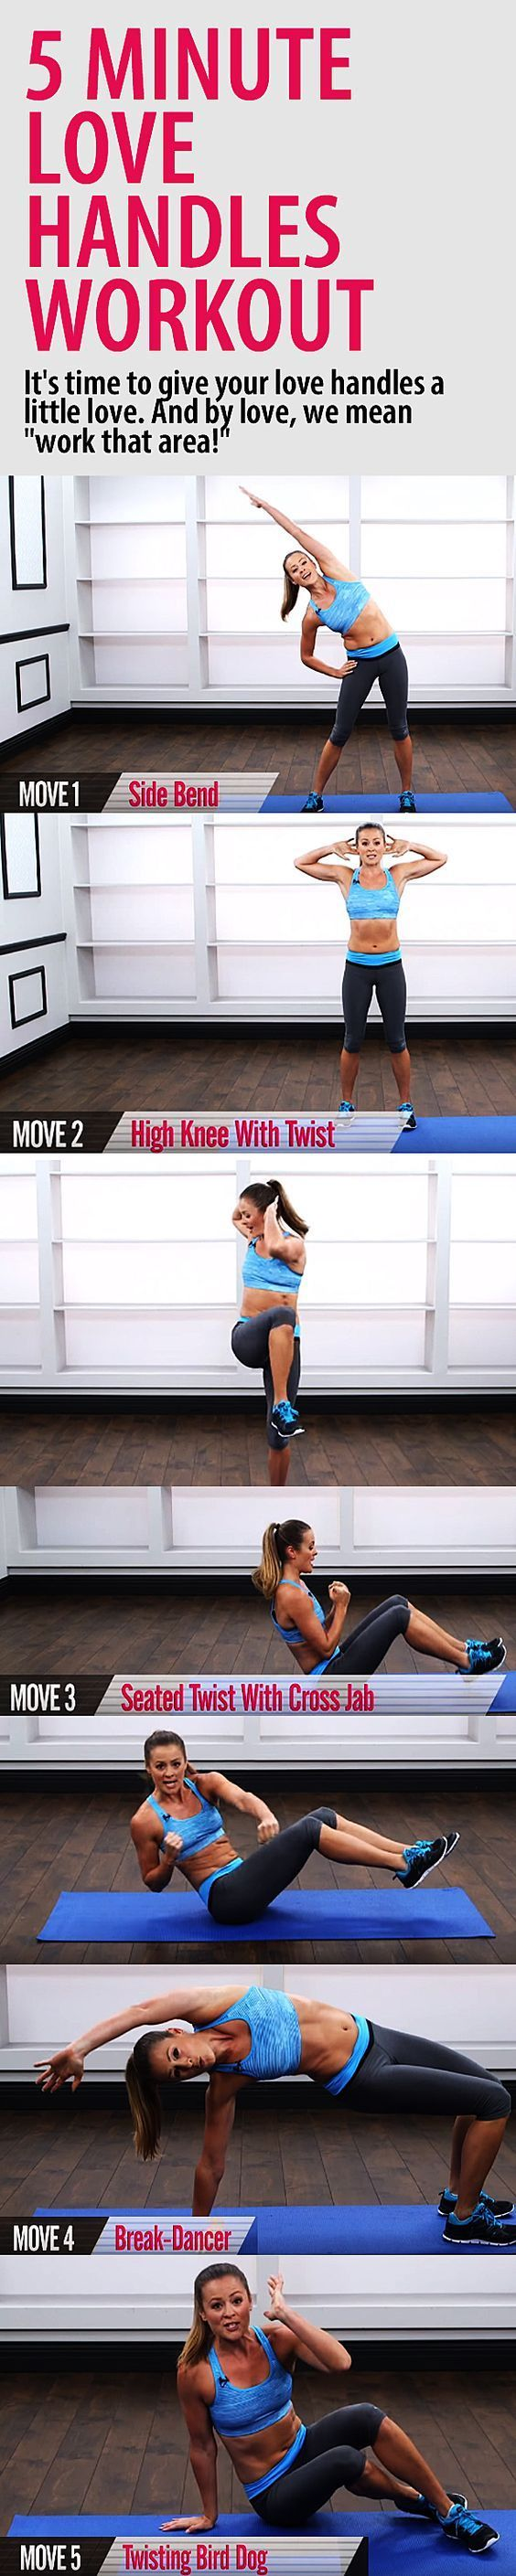 how to lose love handles fast at home